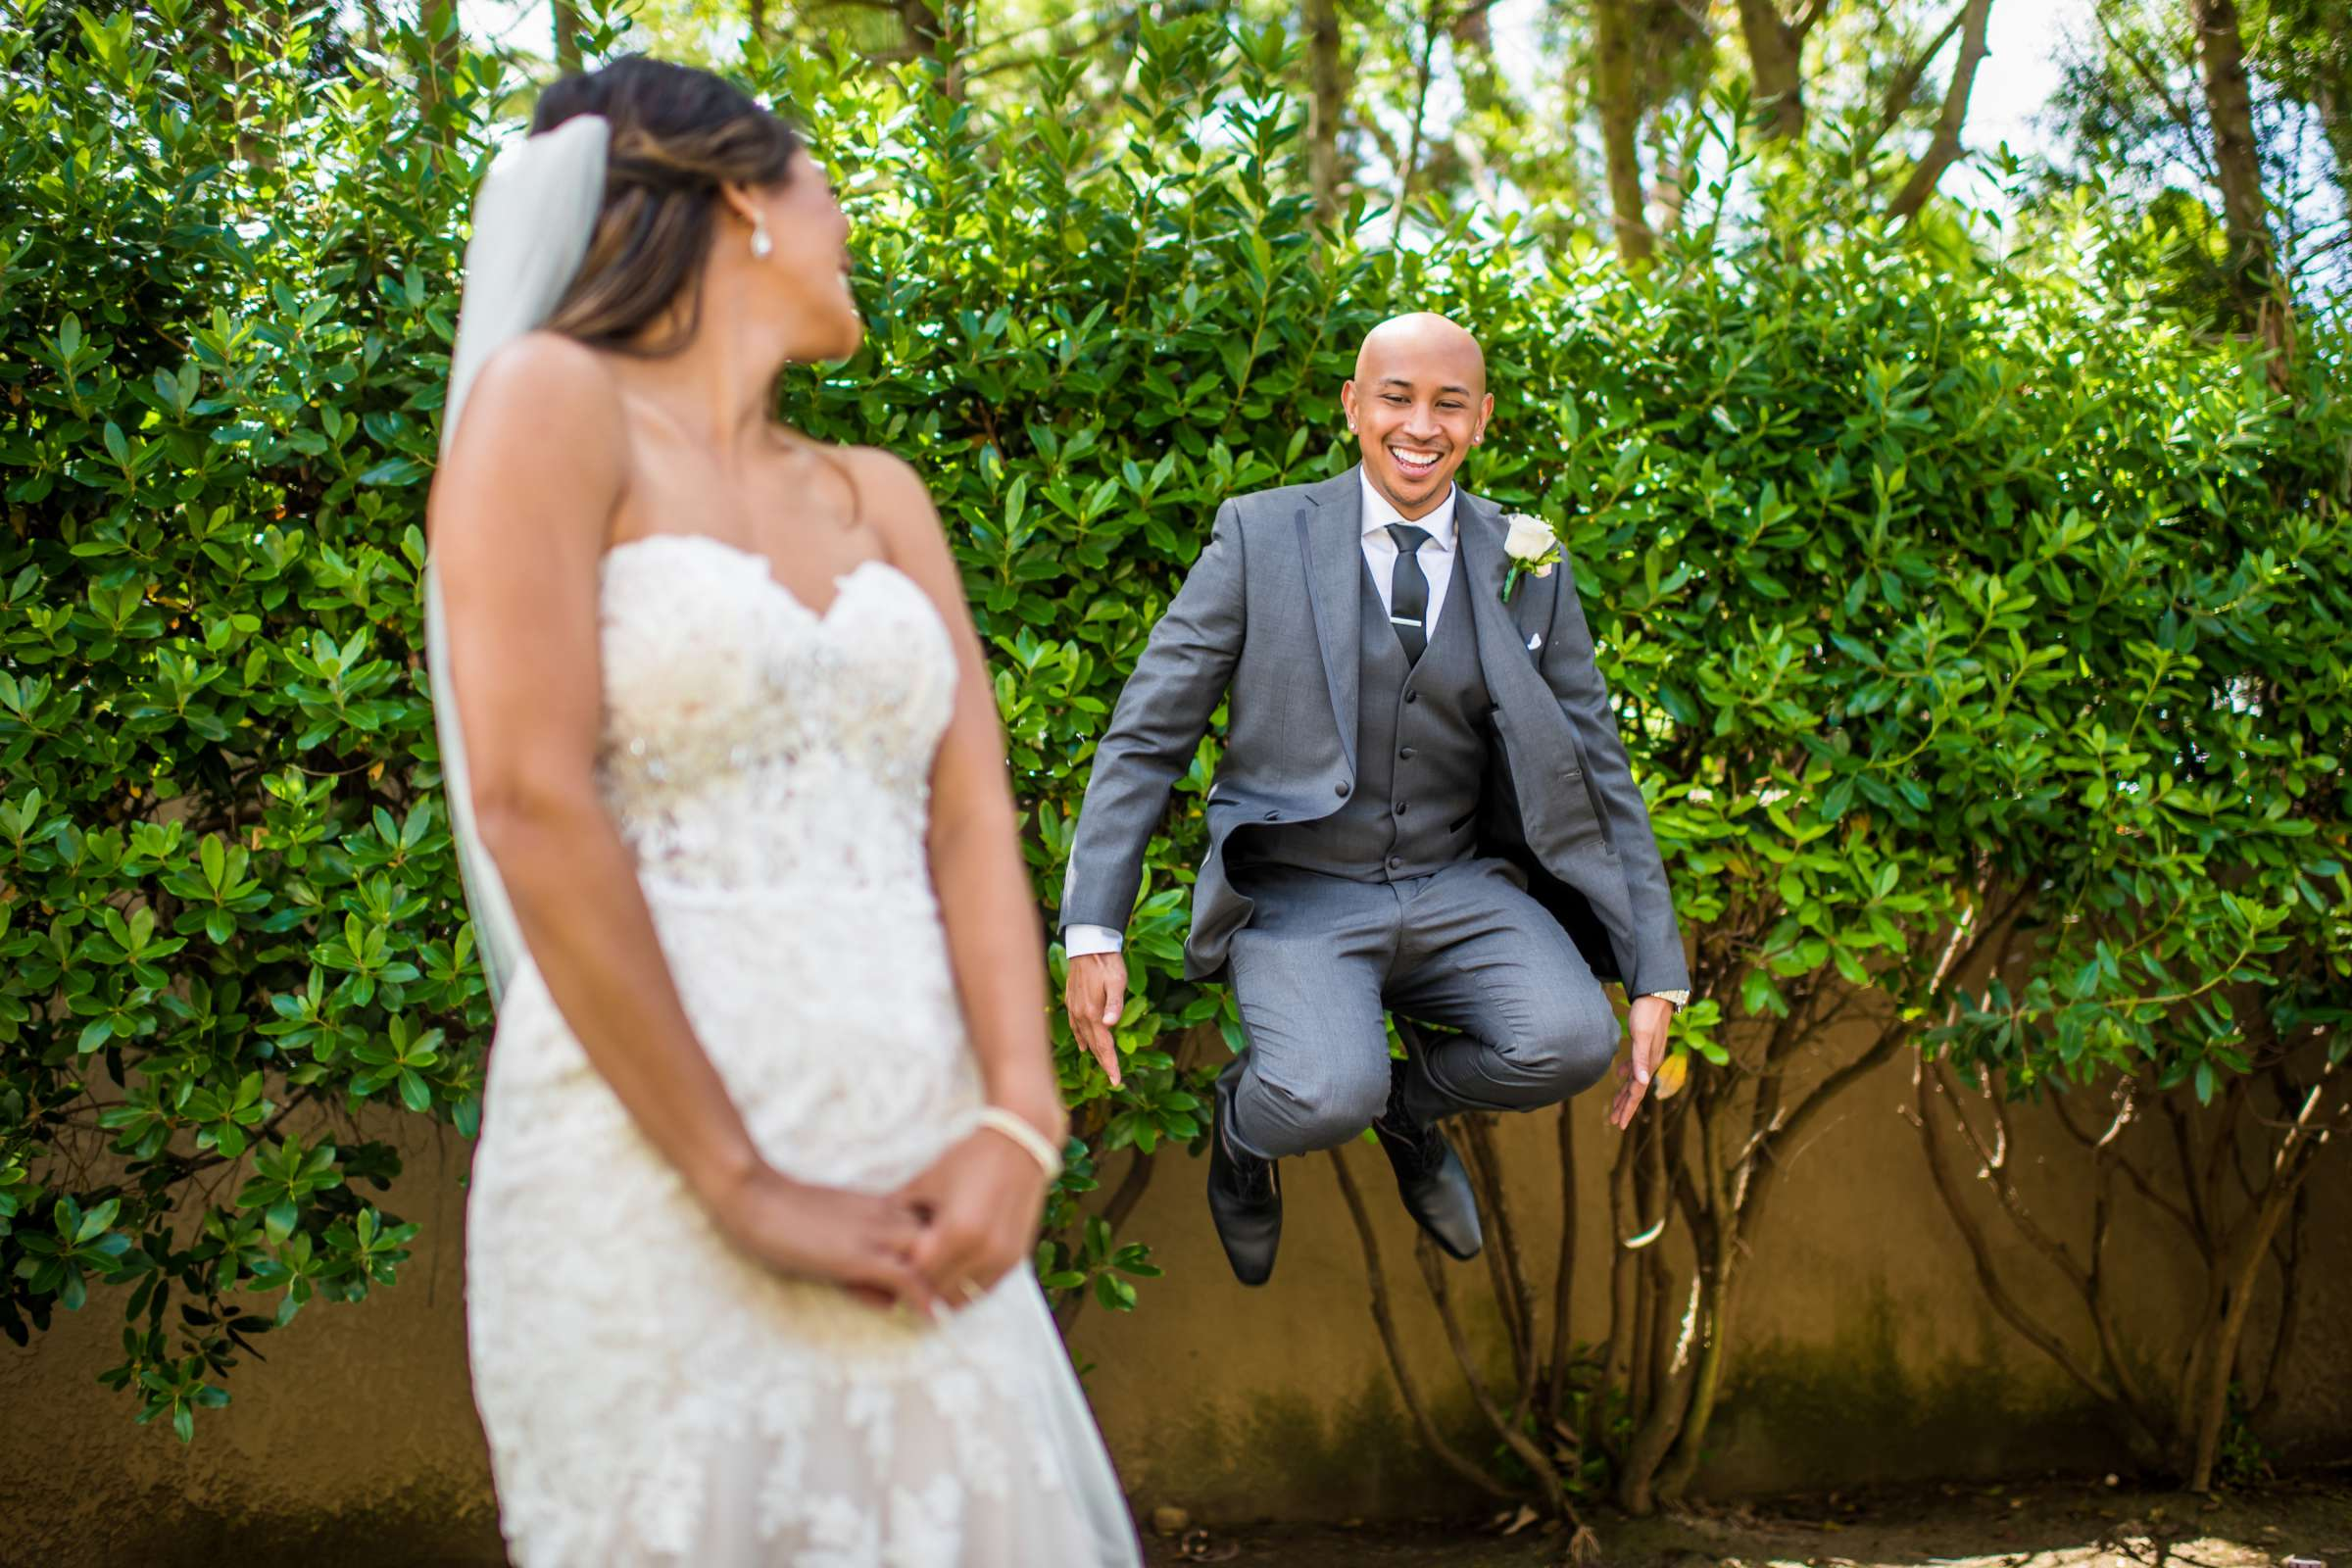 Scripps Seaside Forum Wedding coordinated by Lavish Weddings, Cindy and Justin Wedding Photo #381769 by True Photography